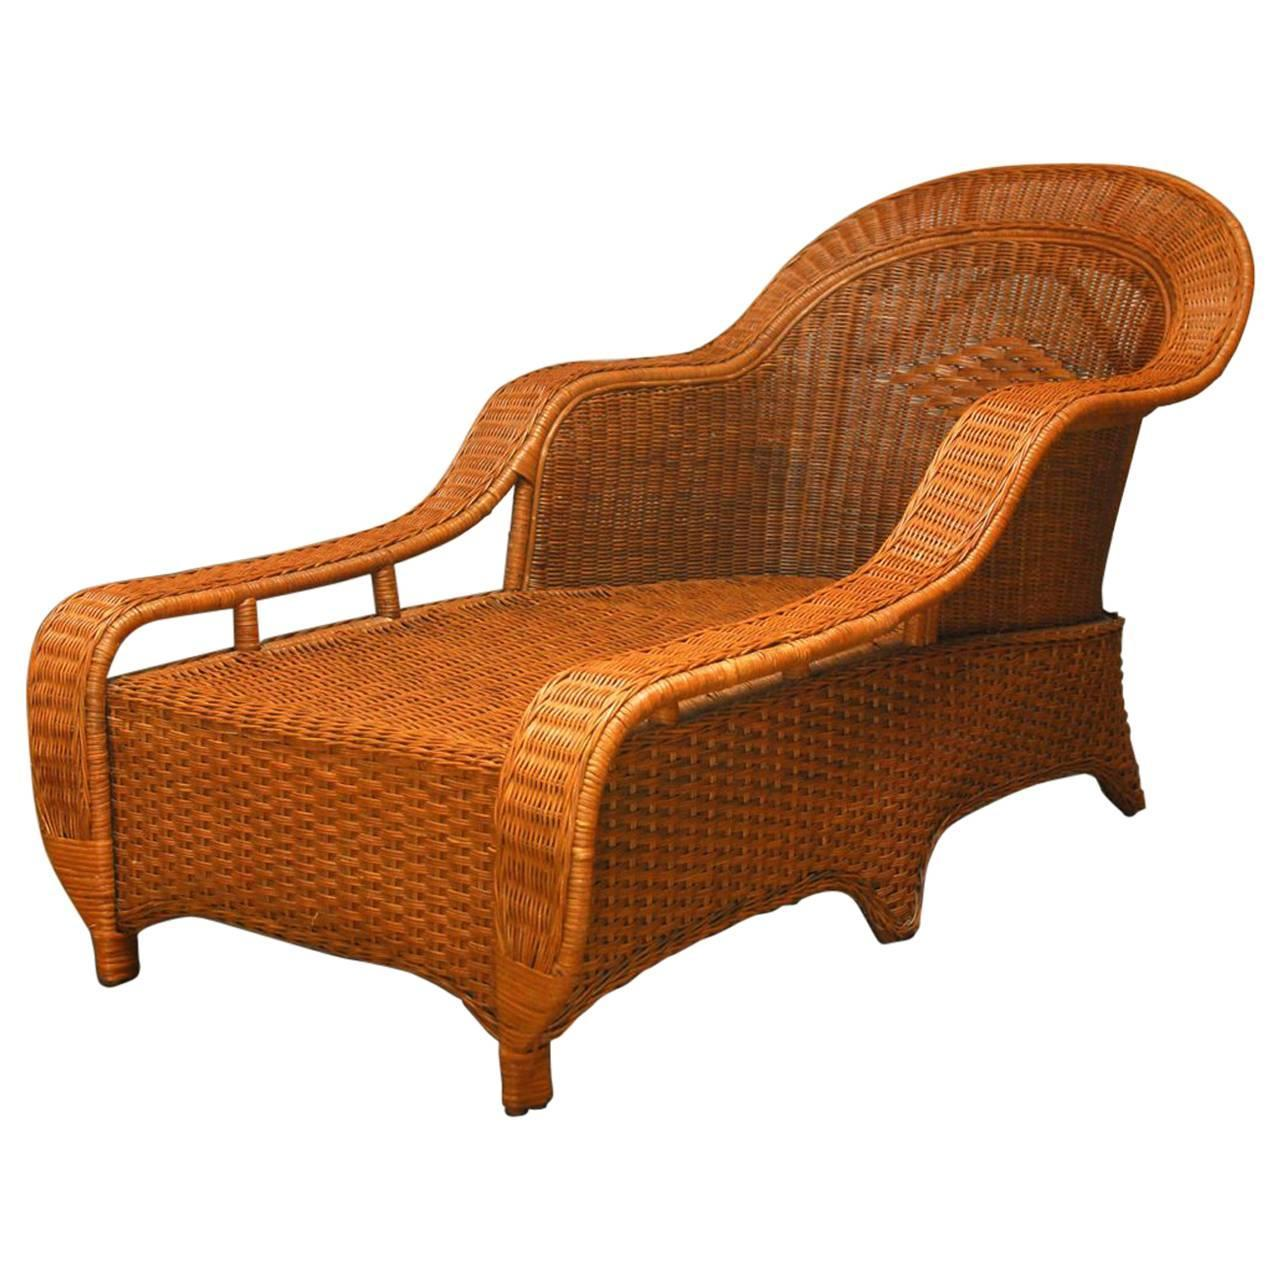 French Style Wicker Chaise Longue By Palecek